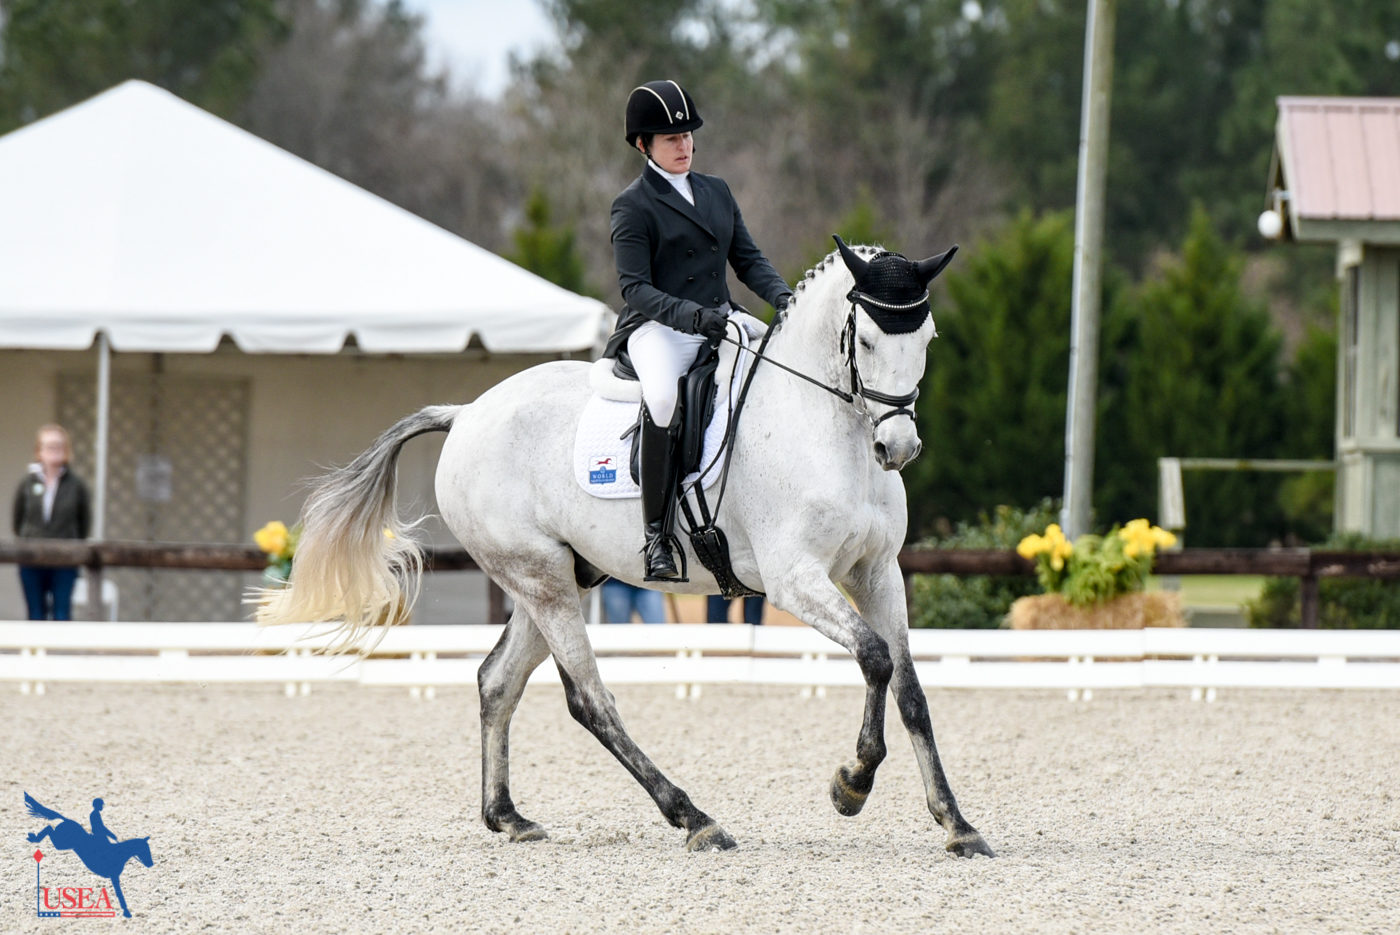 20thT - Sharon White and Cooley On Show - 35.7